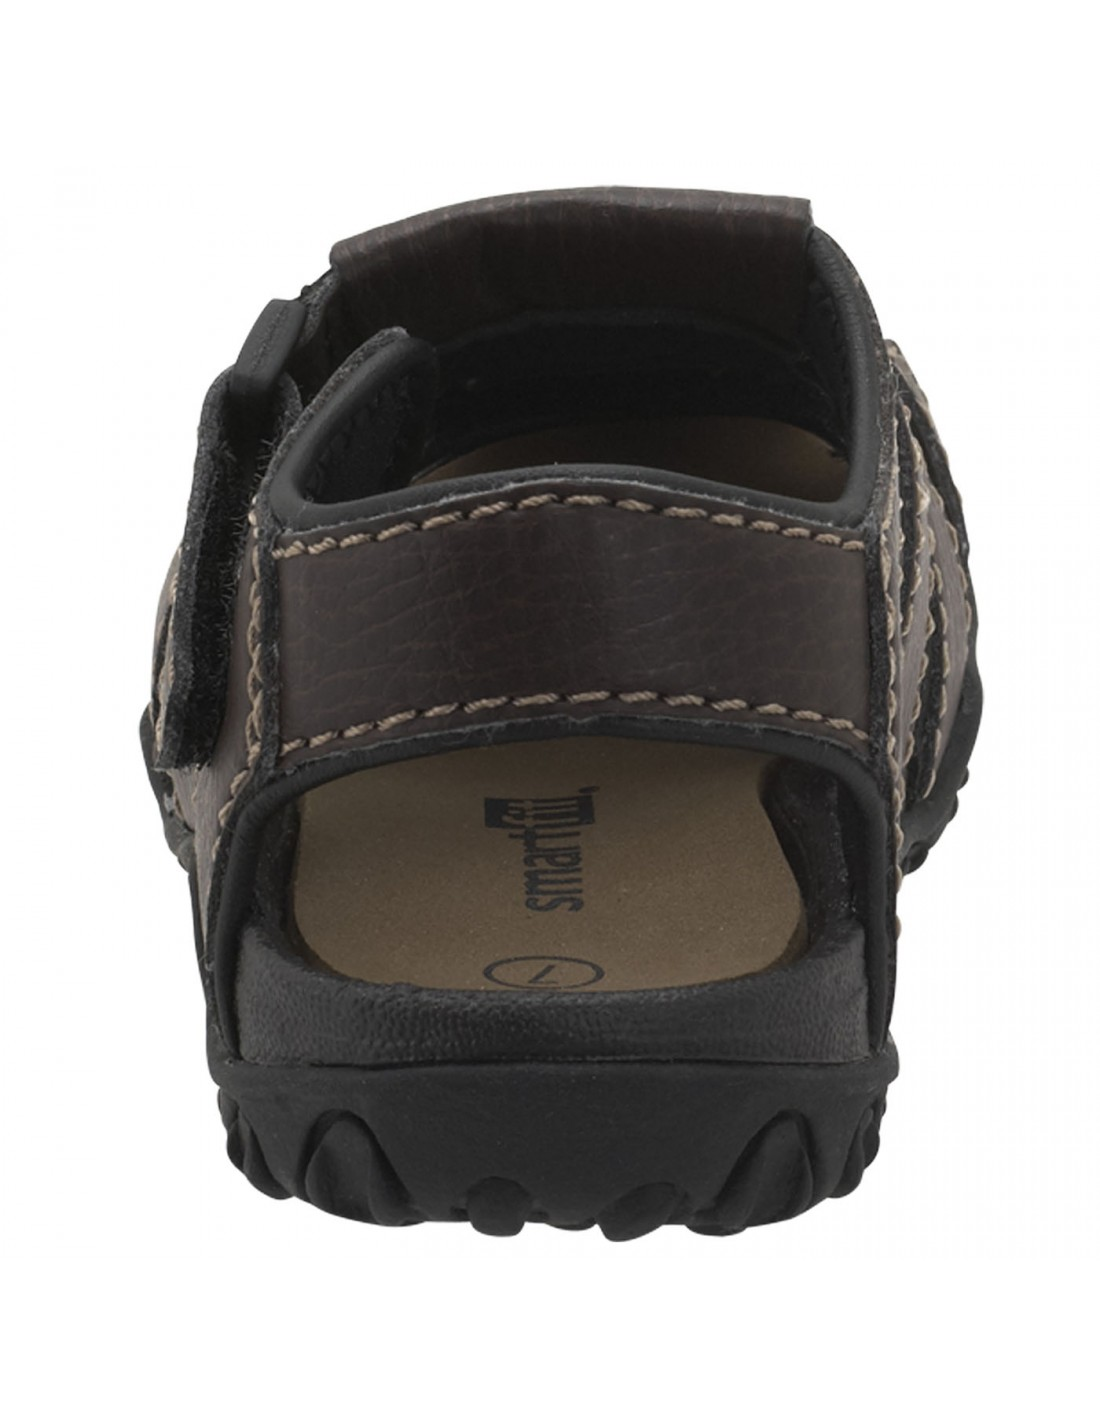 3b5cc962de024 Boys  Toddler Livingston Fisherman sandals - Brown. Next